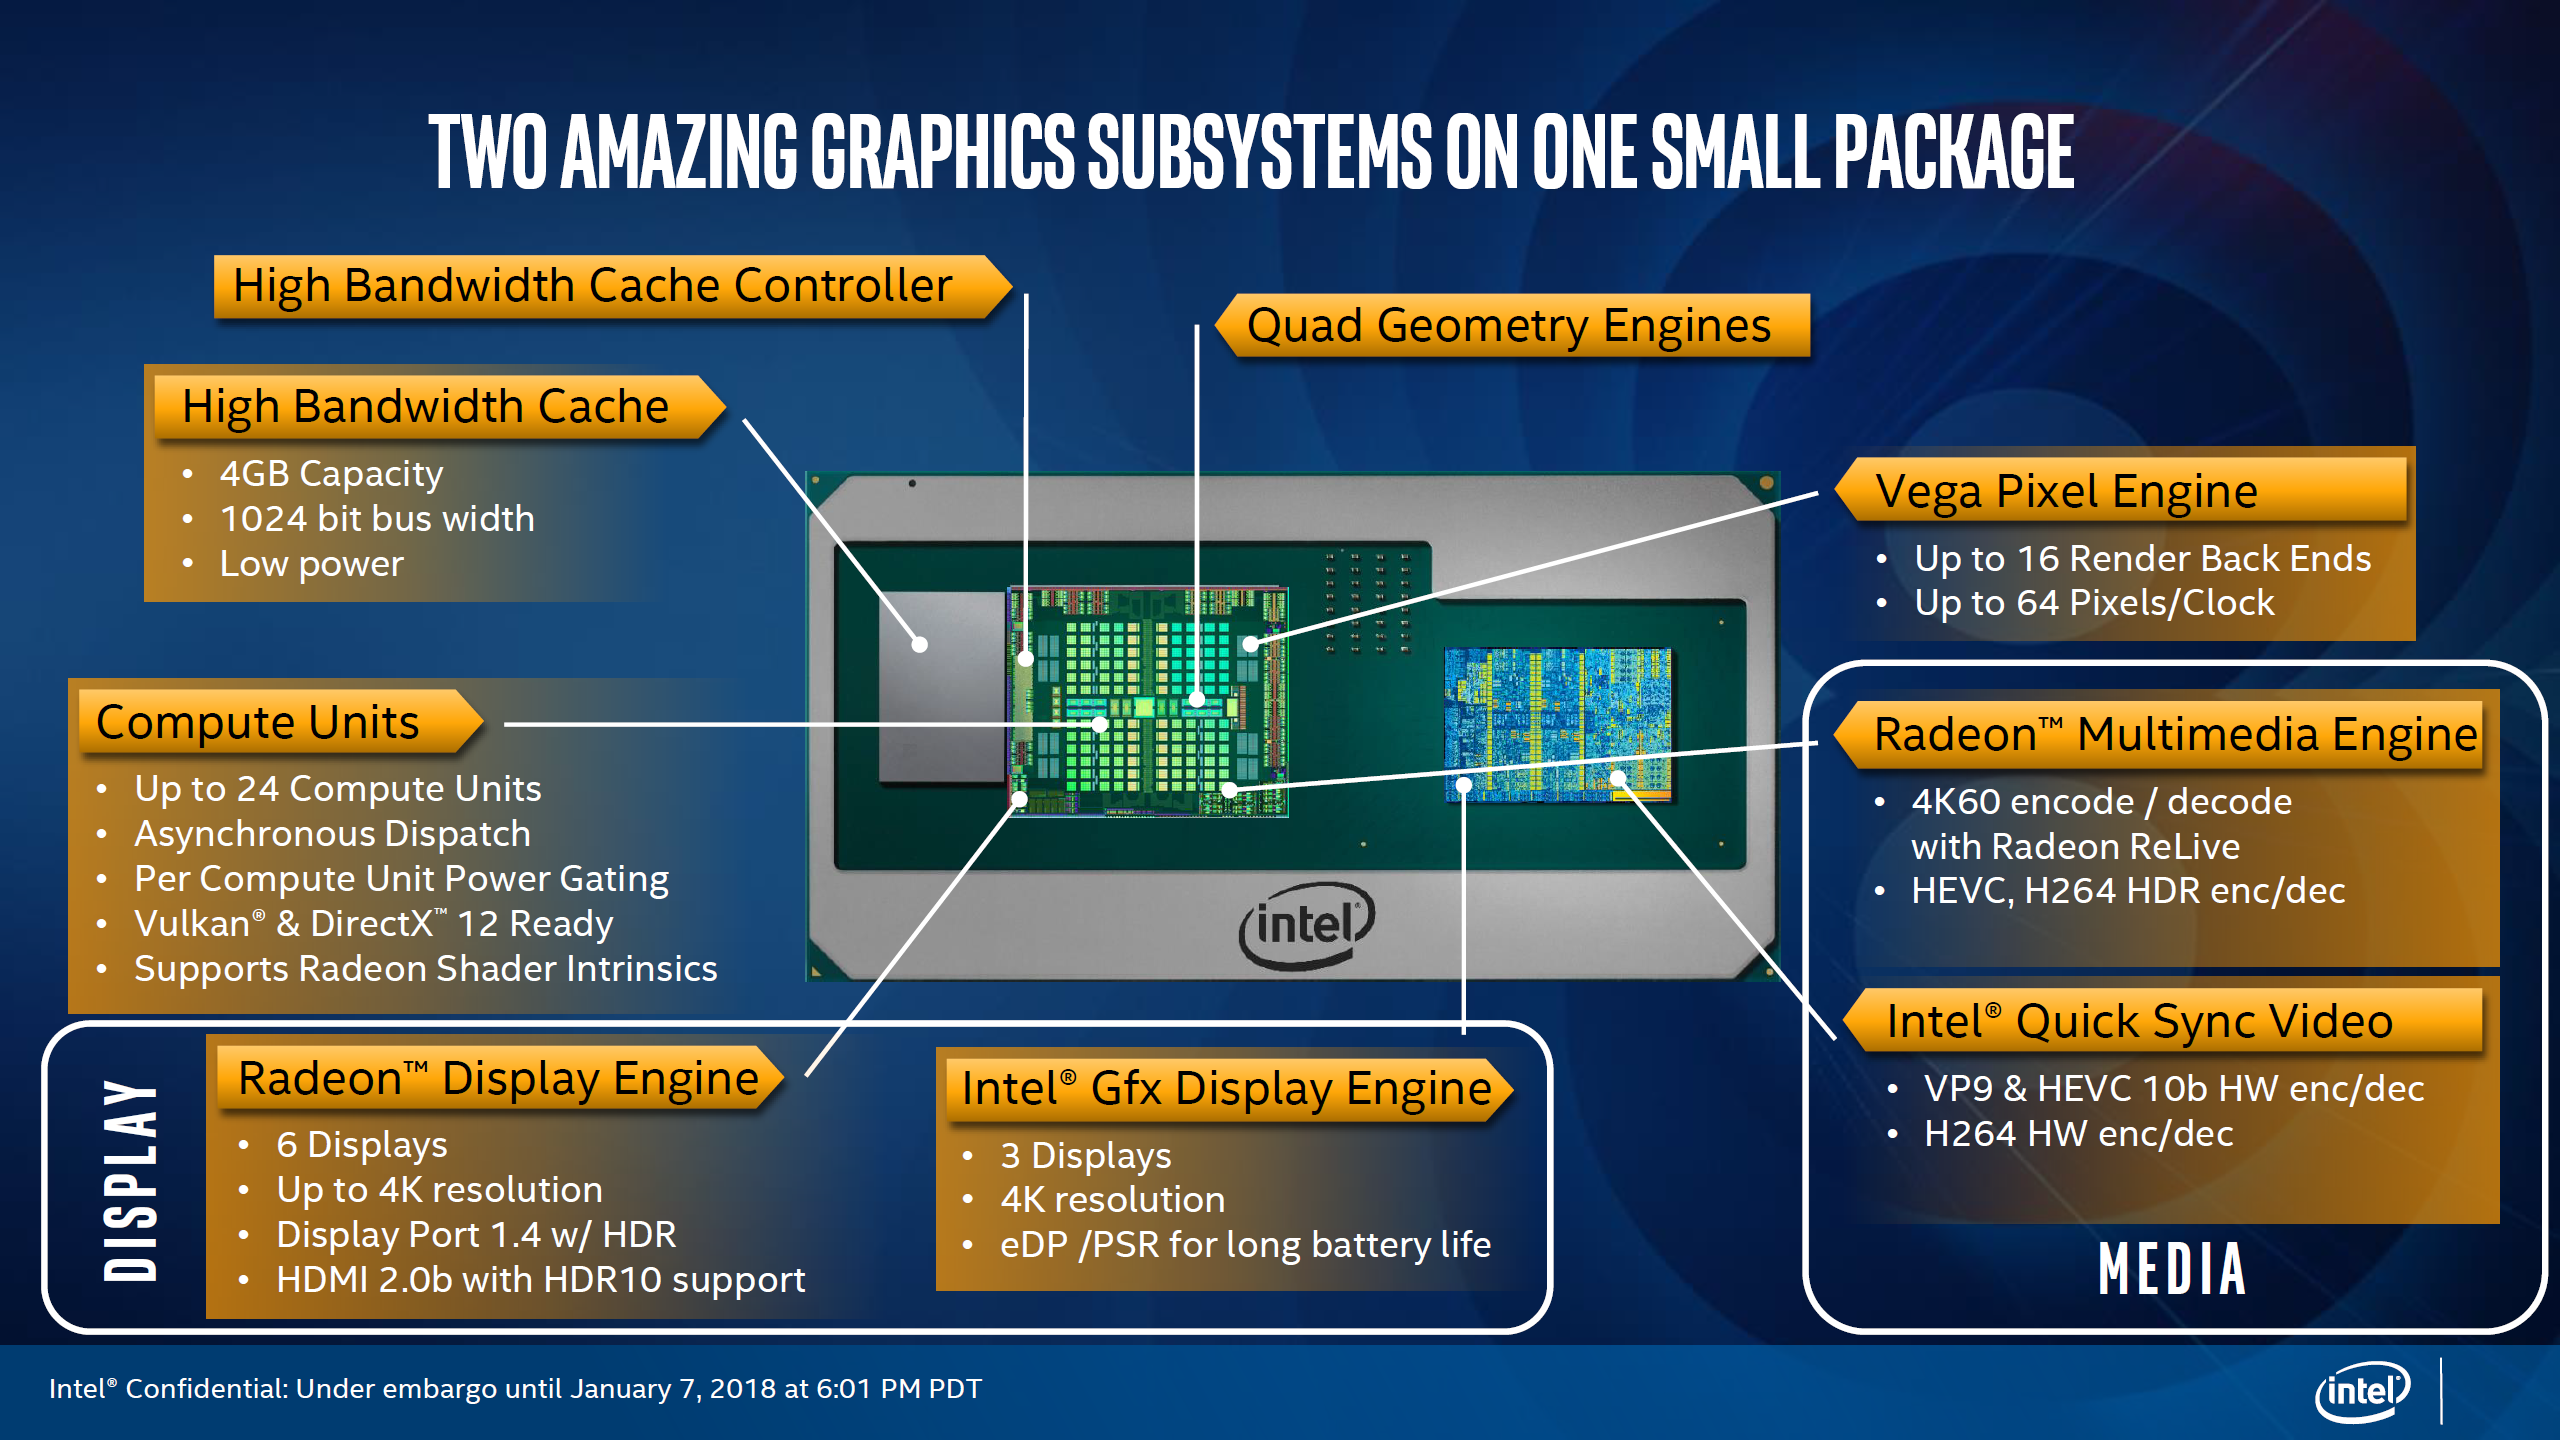 Intel Launches 8th Gen Core Cpus With Amd Rx Vega M Gpu And Hbm2